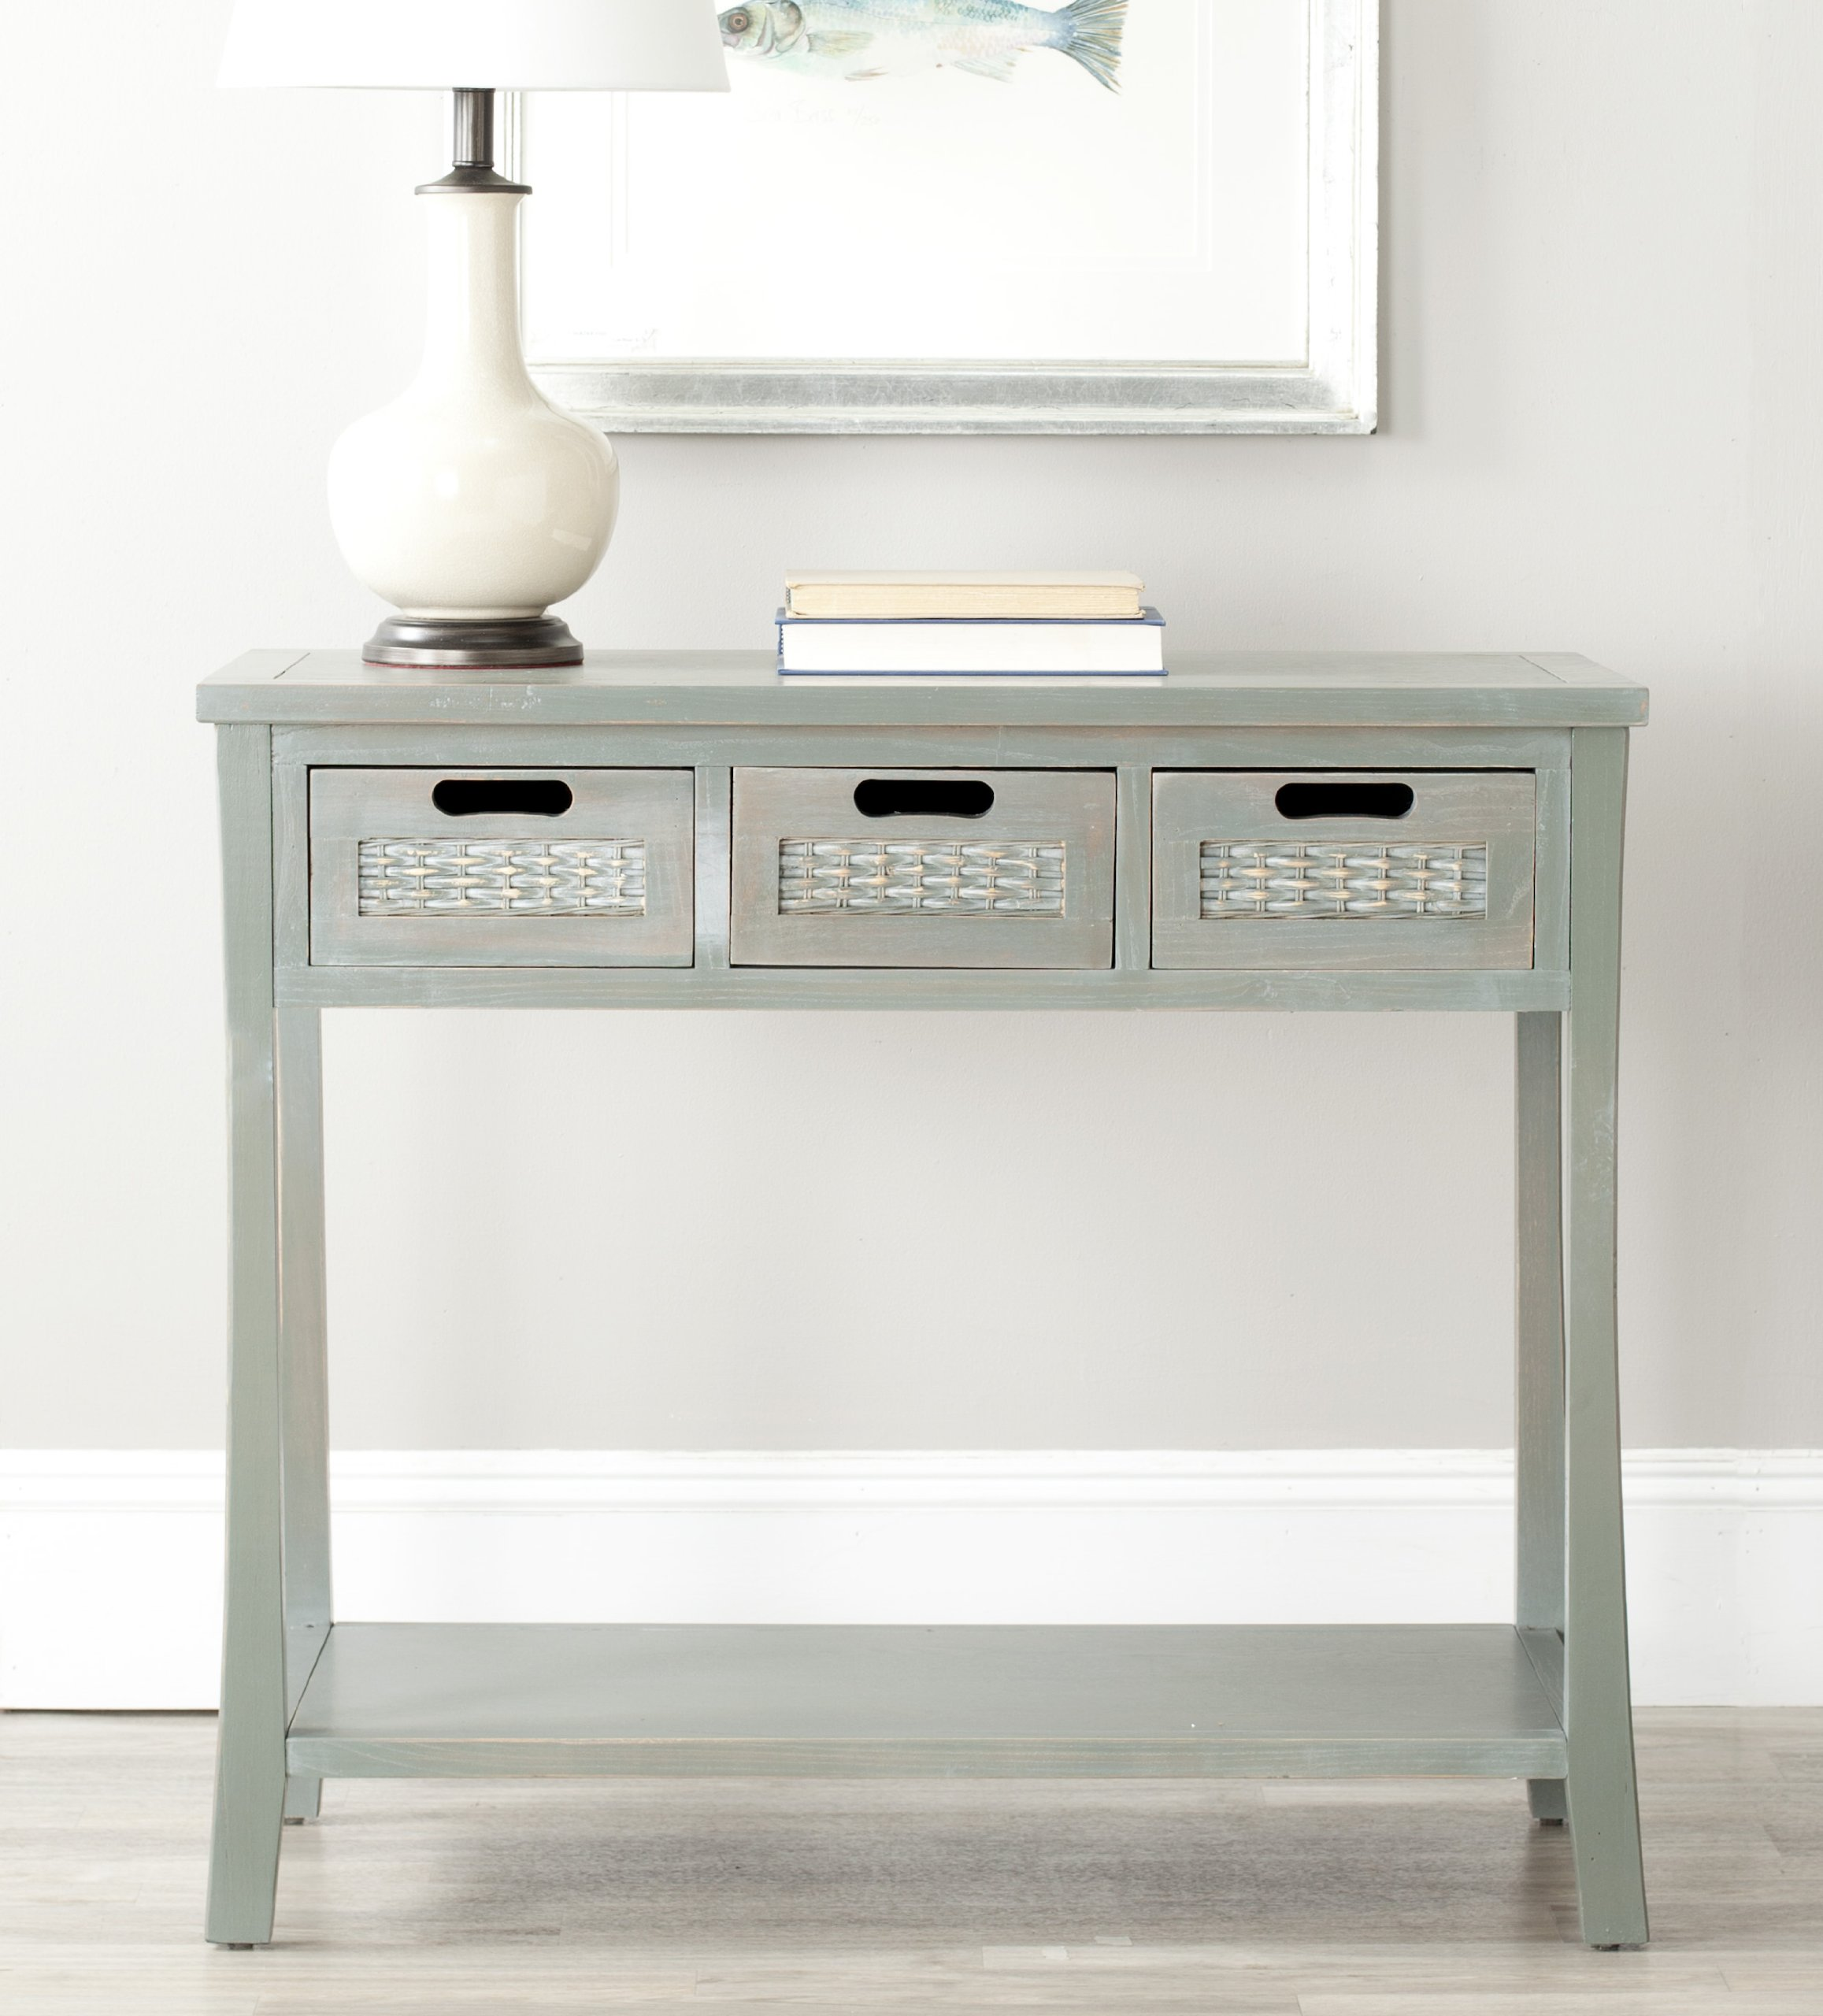 "Safavieh American Homes Collection Autumn French Grey 3-Drawer Console Table - The blue finish of this console table will create a perfect accent to your home This console table features 3 drawers measuring 9.1"" x 13"" x 4.7"" Crafted of solid elm wood - living-room-furniture, living-room, console-tables - 81rlyqaoOoL -"